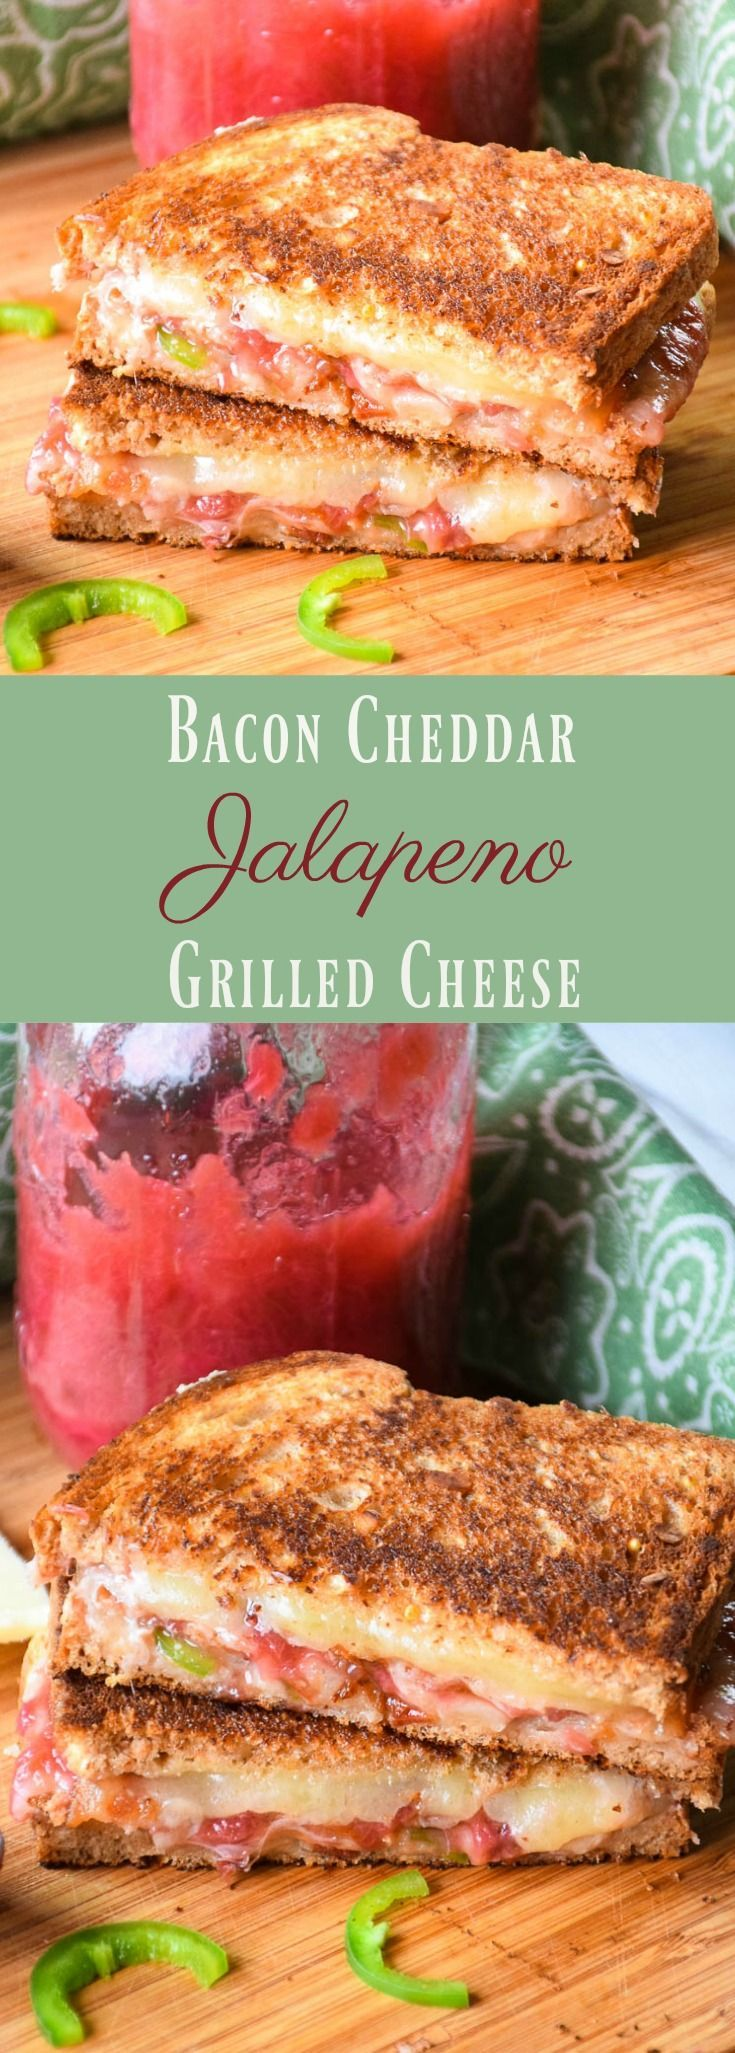 Rhubarb sauce, jalapenos, sharp cheddar, and salty crispy bacon contribute an amazing combination of flavors in Bacon Cheddar Jalapeno Grilled Cheese! #spon #DairyMonth @CabotCheese